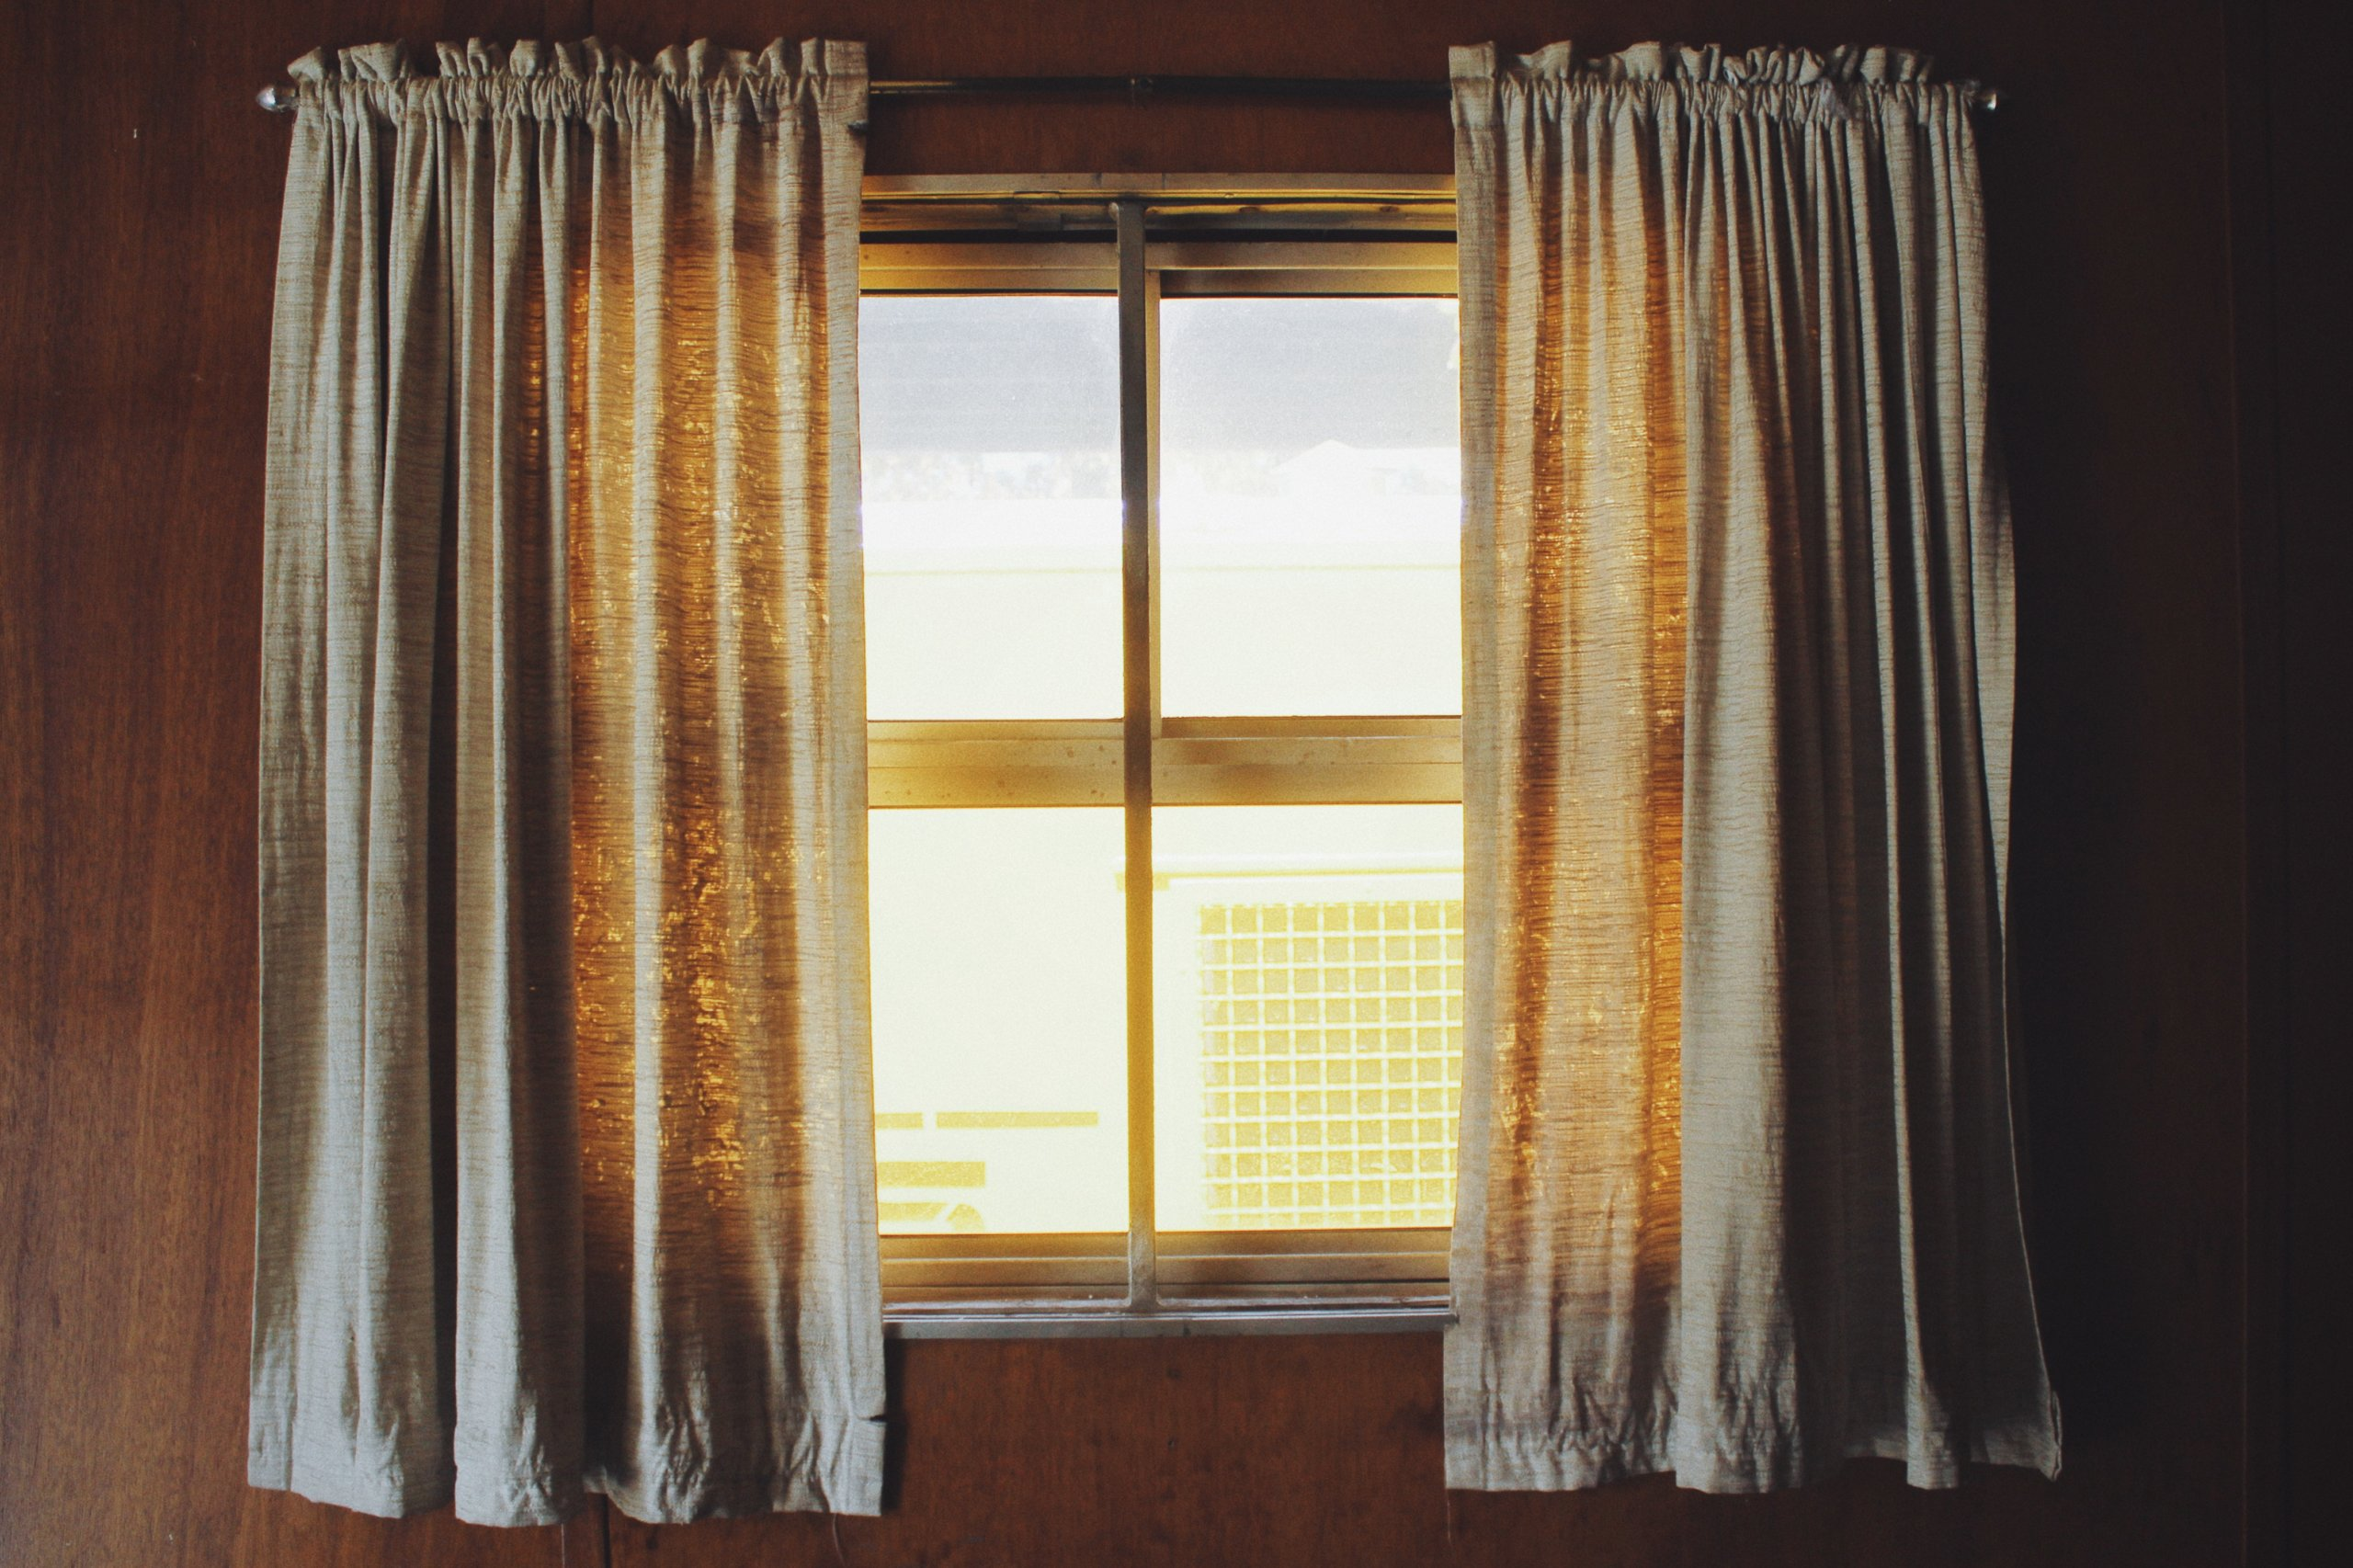 burlap curtains infront of farmhouse window